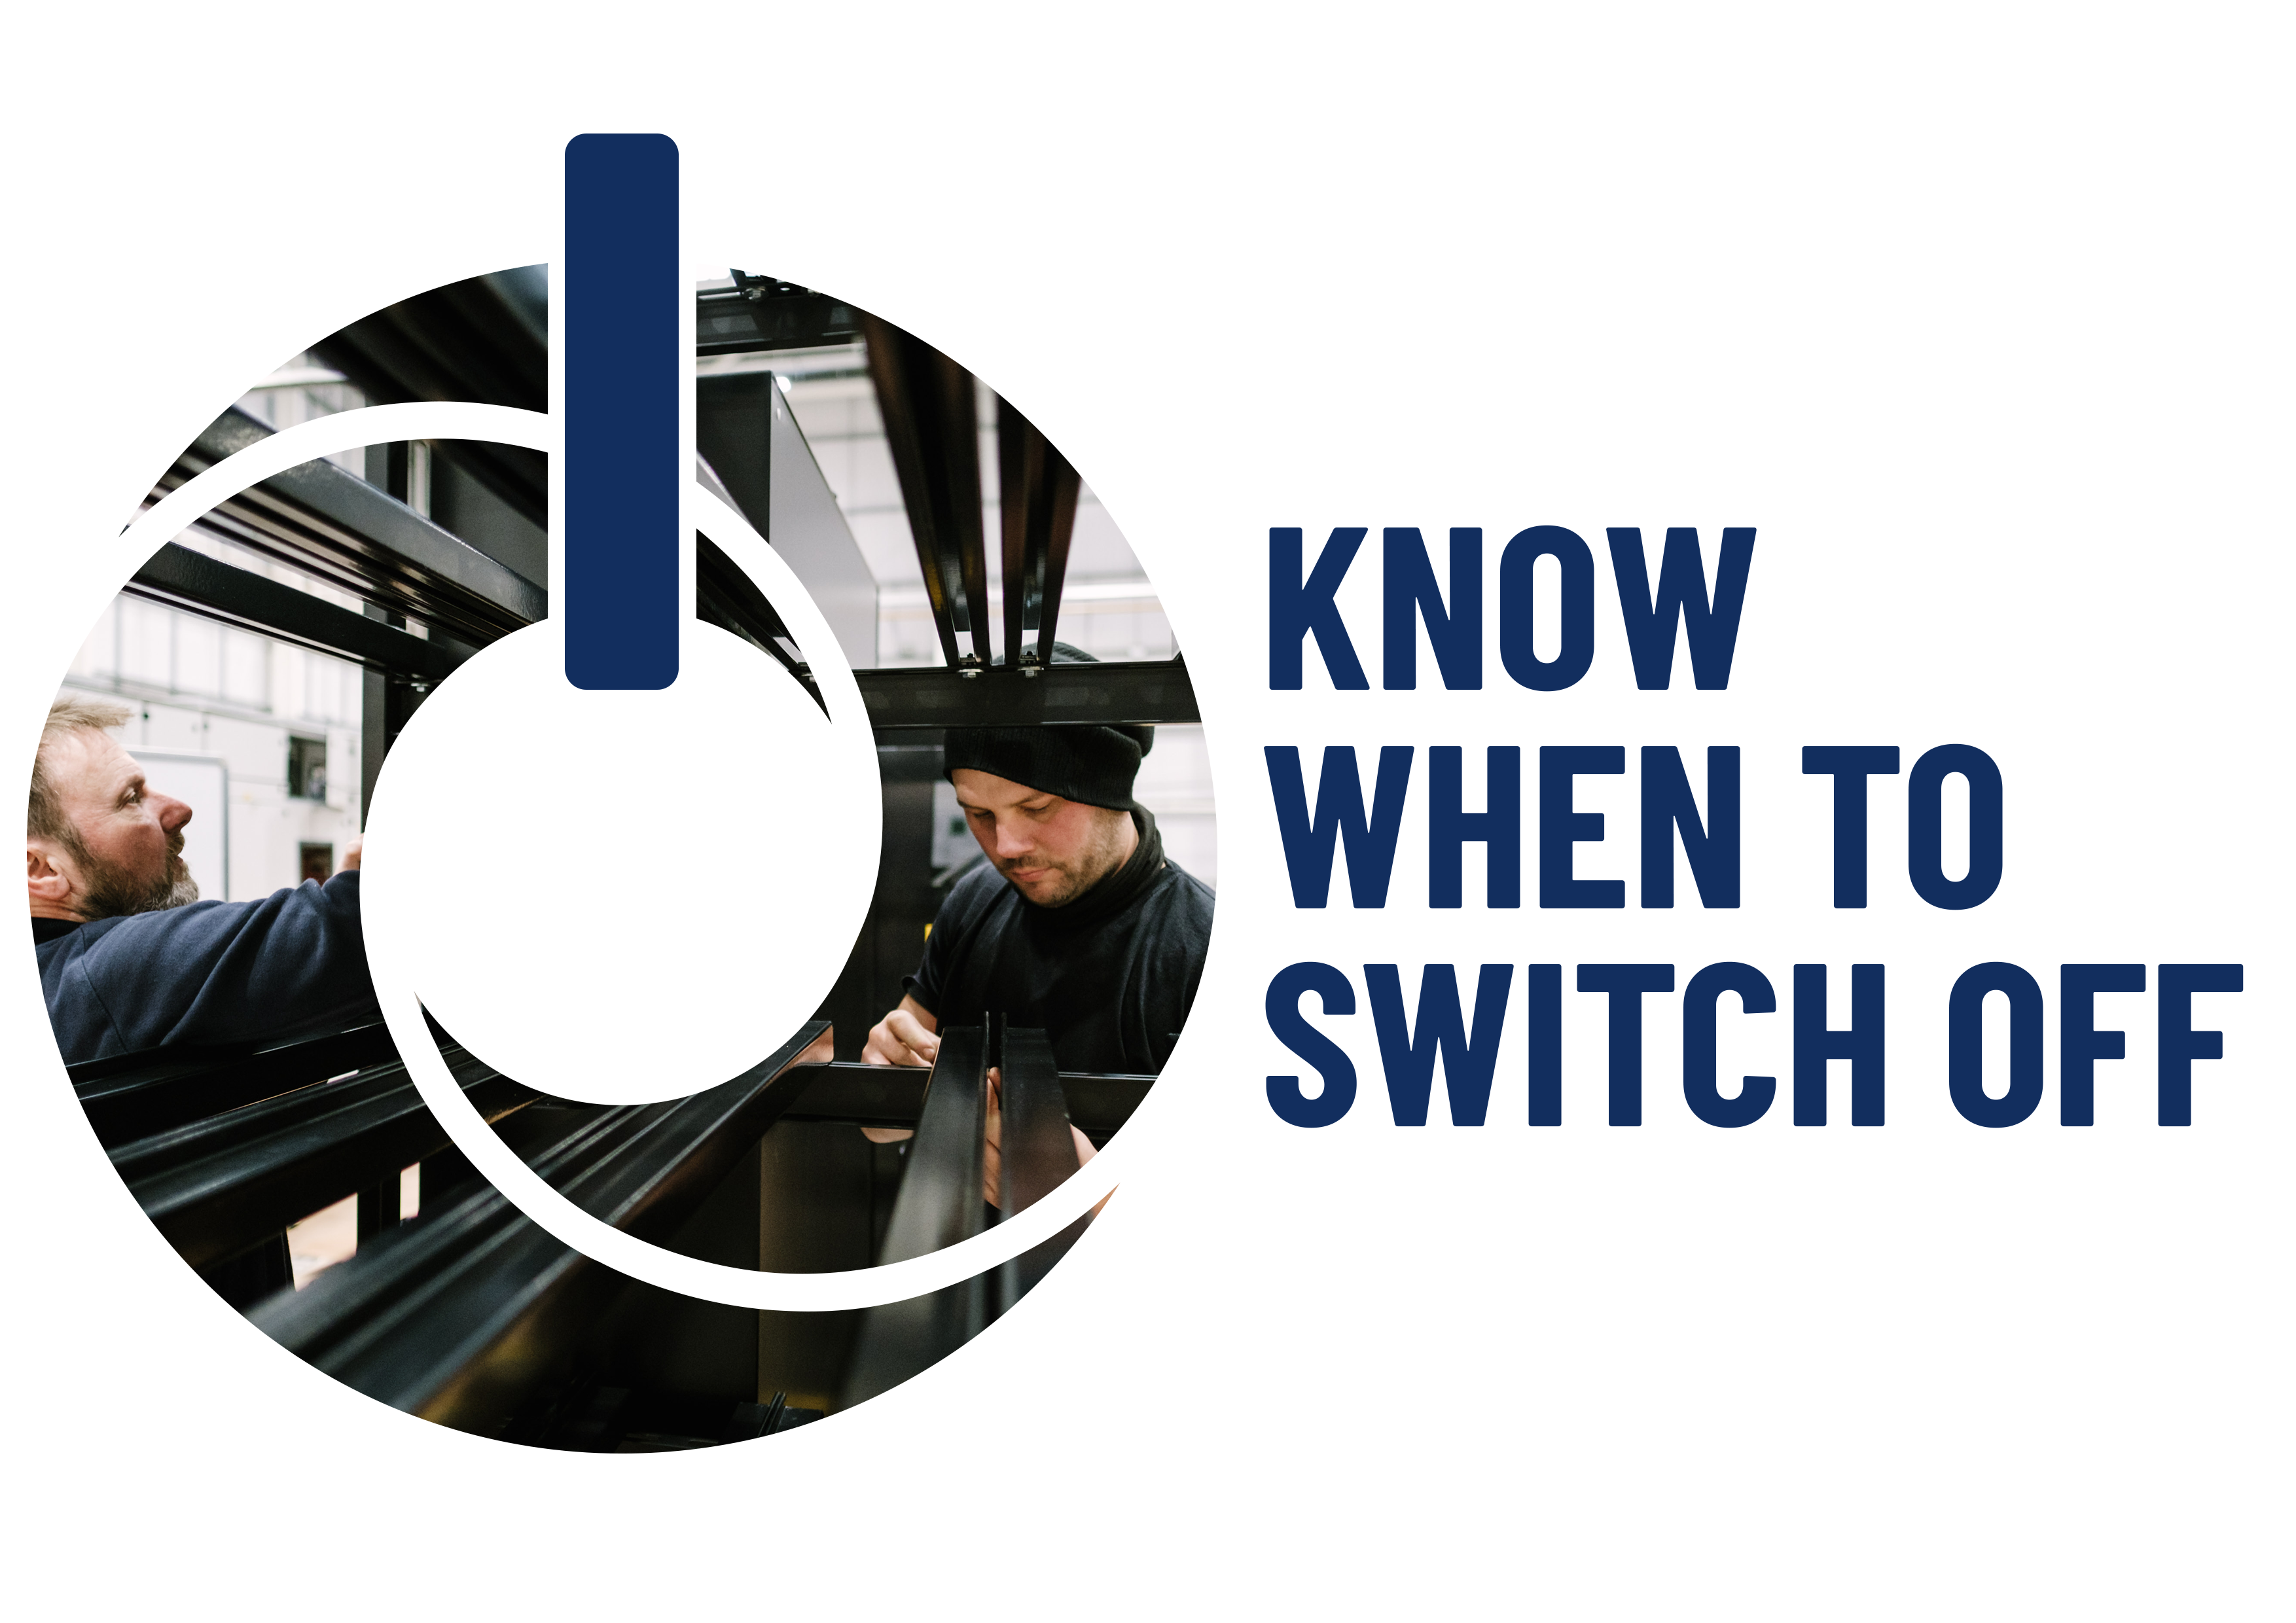 Know when to switch off finished